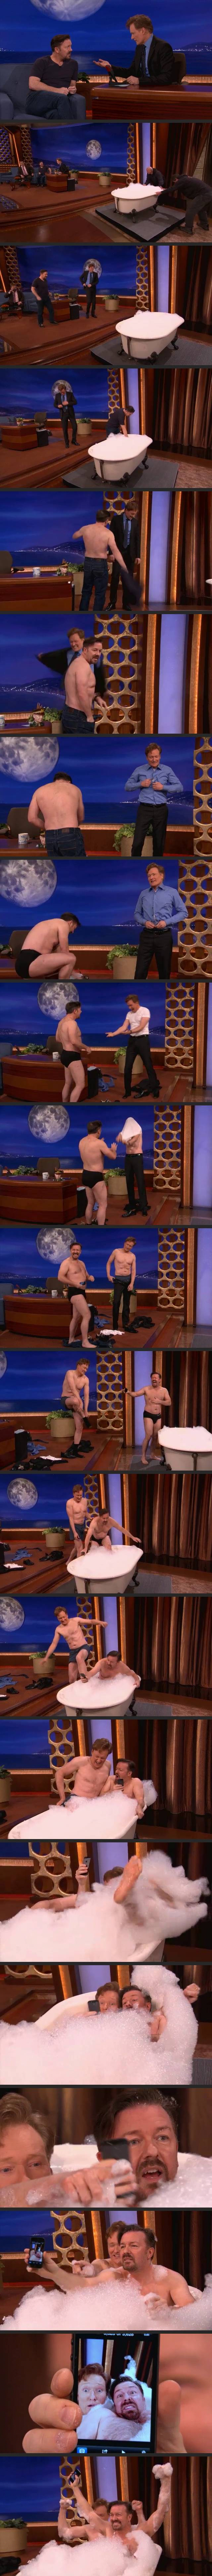 Ricky Gervais & Conan Take A Bubble Bath